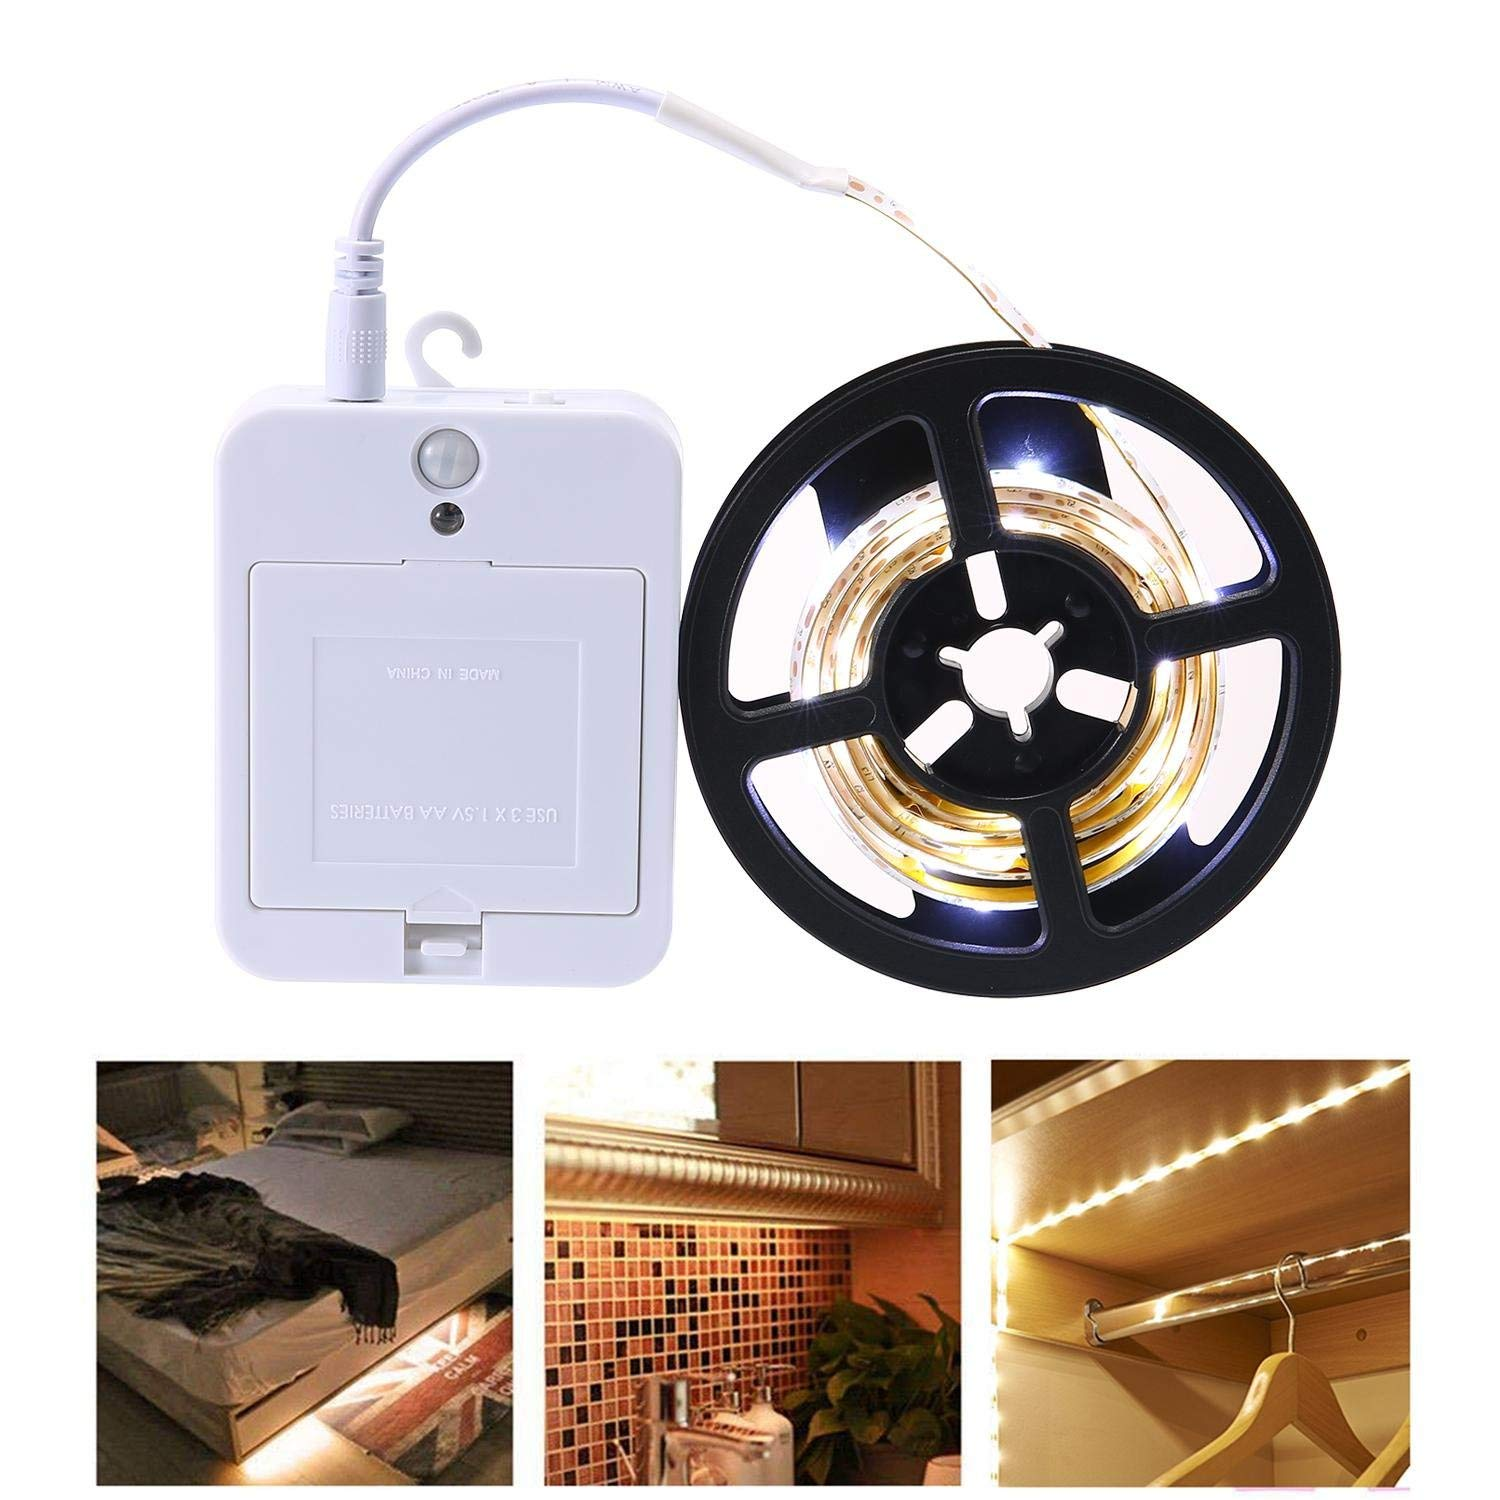 Teepao Led Strip Lights Battery Powered 1M/3.3FT Motion Sensor Closet Light 30 LED Under Bed Light 3M Adhesive TV Cupboards Wardrobe Cabinet Pantry Hallway, 3 Working Modes(Cool White)